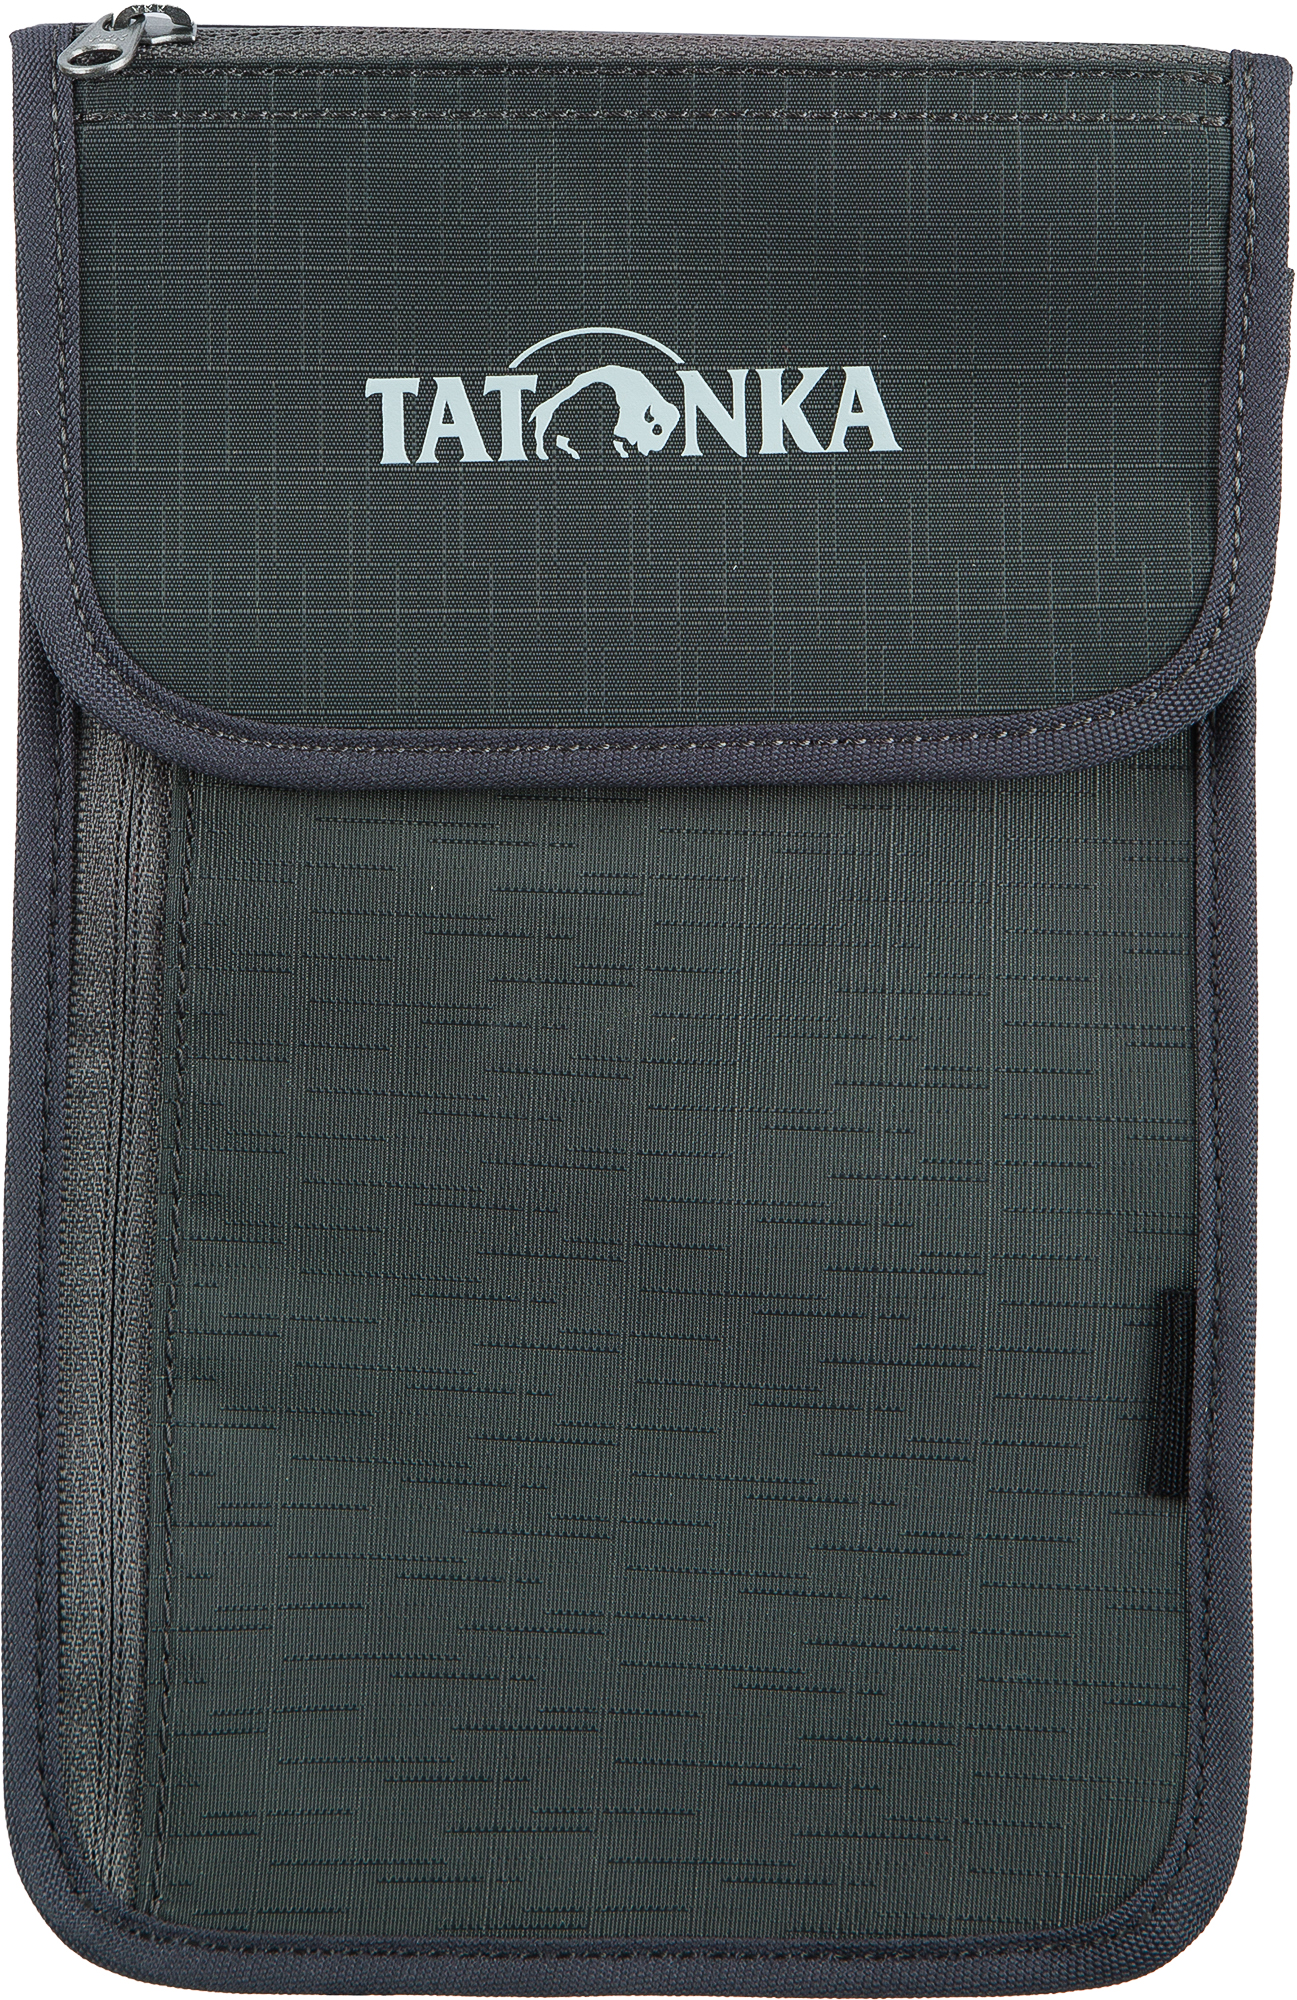 Tatonka Кошелек Tatonka NECK WALLET цена